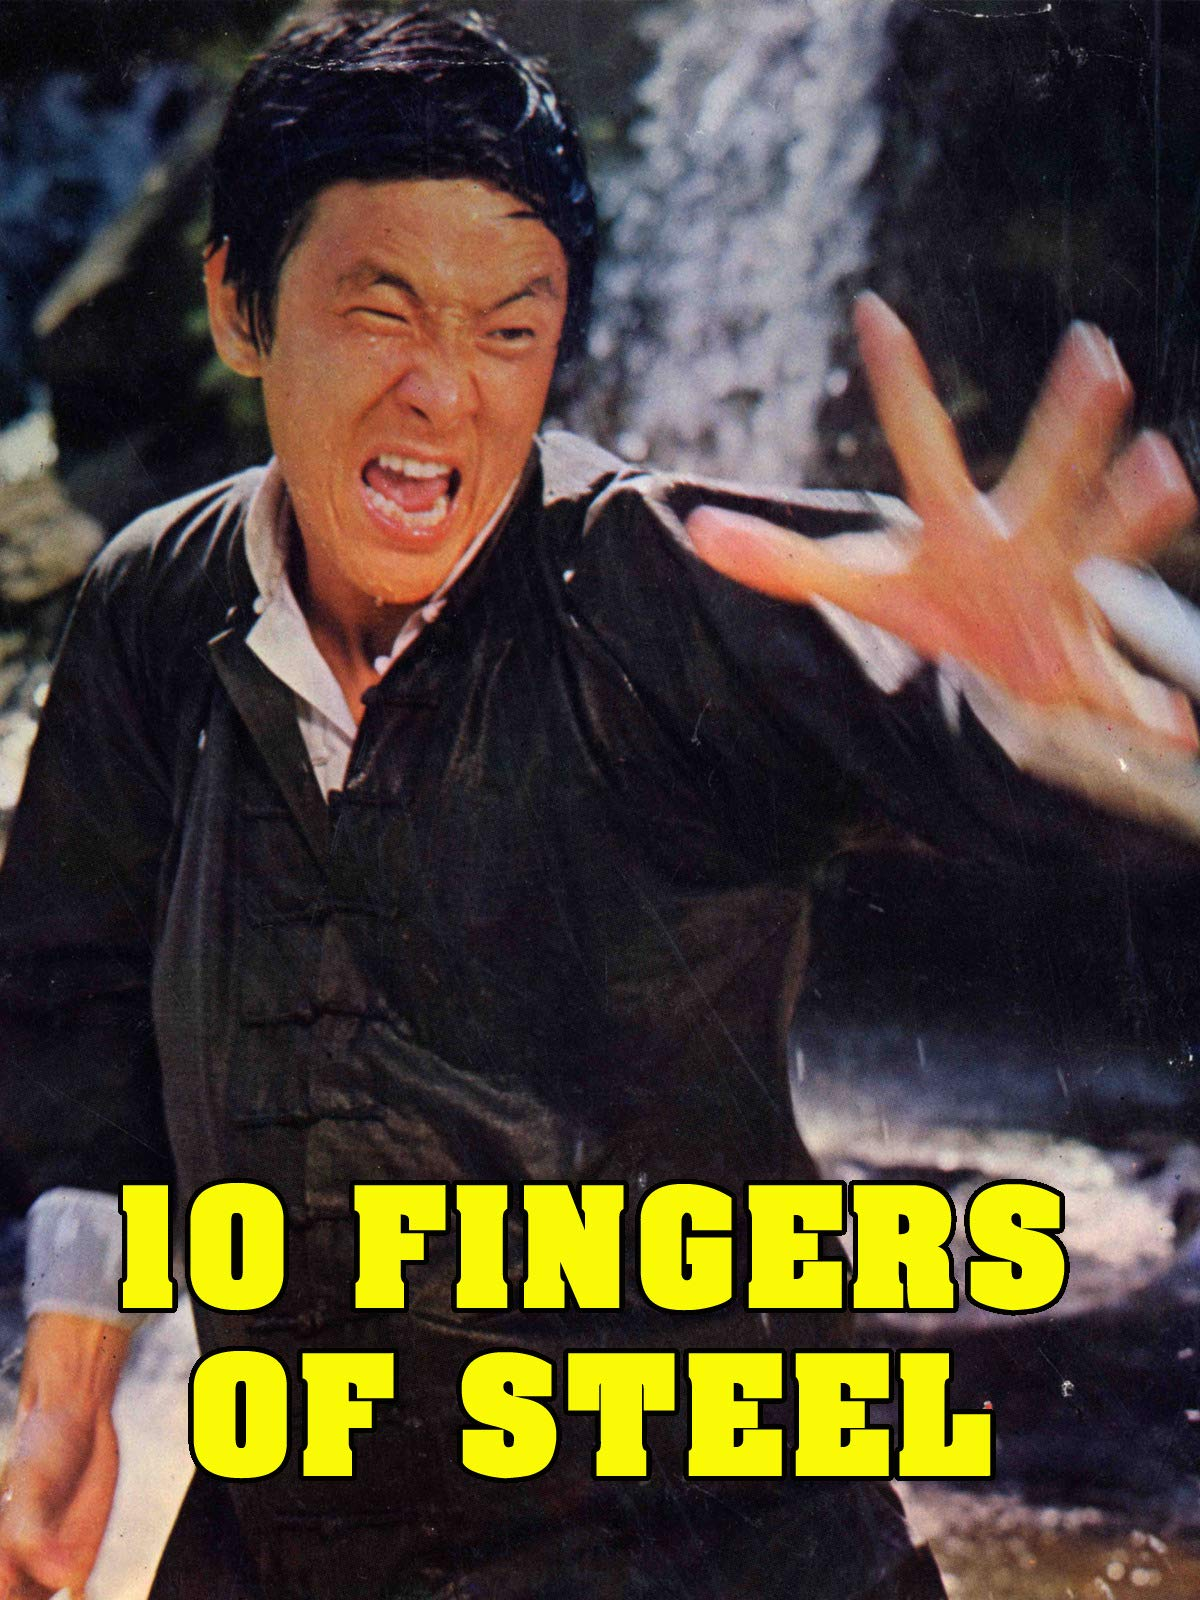 10 Fingers of Steel